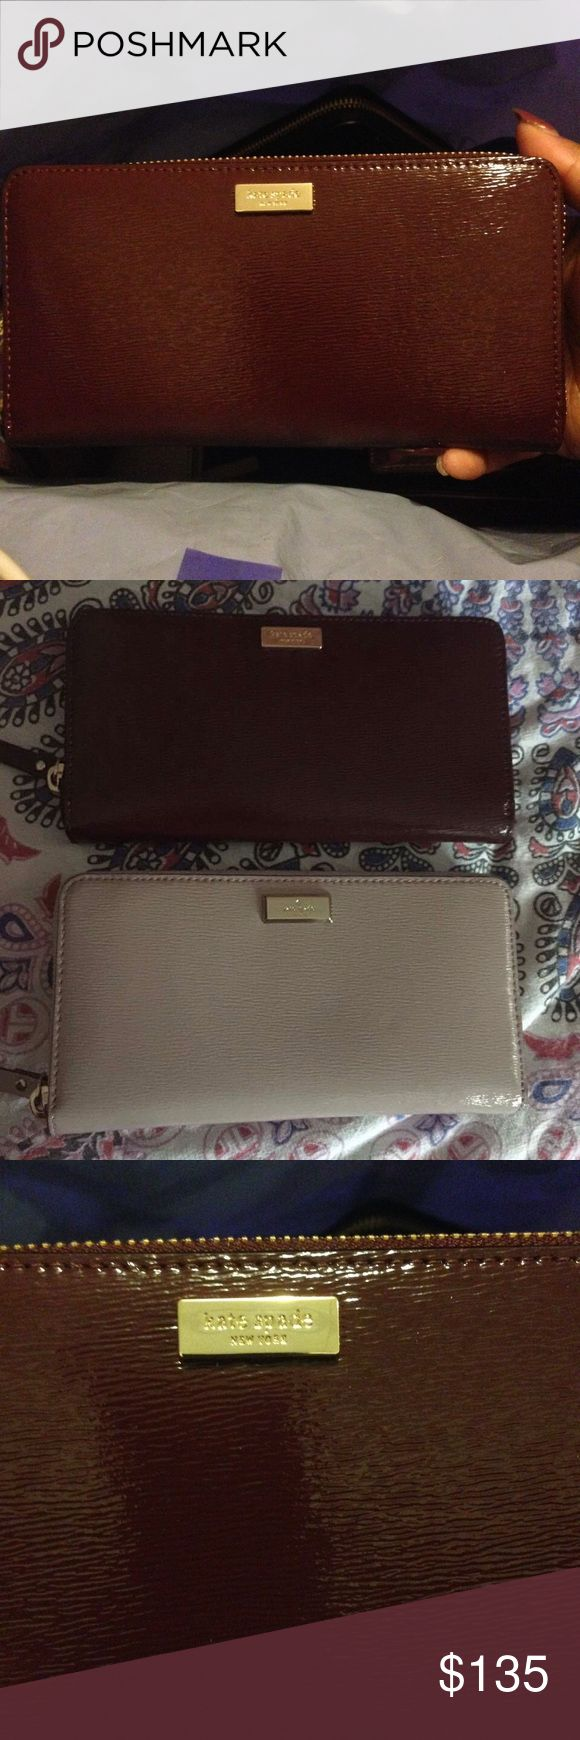 Kate Spade Bixby Place Neda wallet SALE ❤️ Brand new! Smooth shiny cross hatched leather texture. With original tags still attached! Makes a beautiful birthday or Mother's Day gift! Please make your offers through the offer button, I don't discuss prices in comments! Please keep in mind the 20% commission fees when making offers. kate spade Bags Wallets